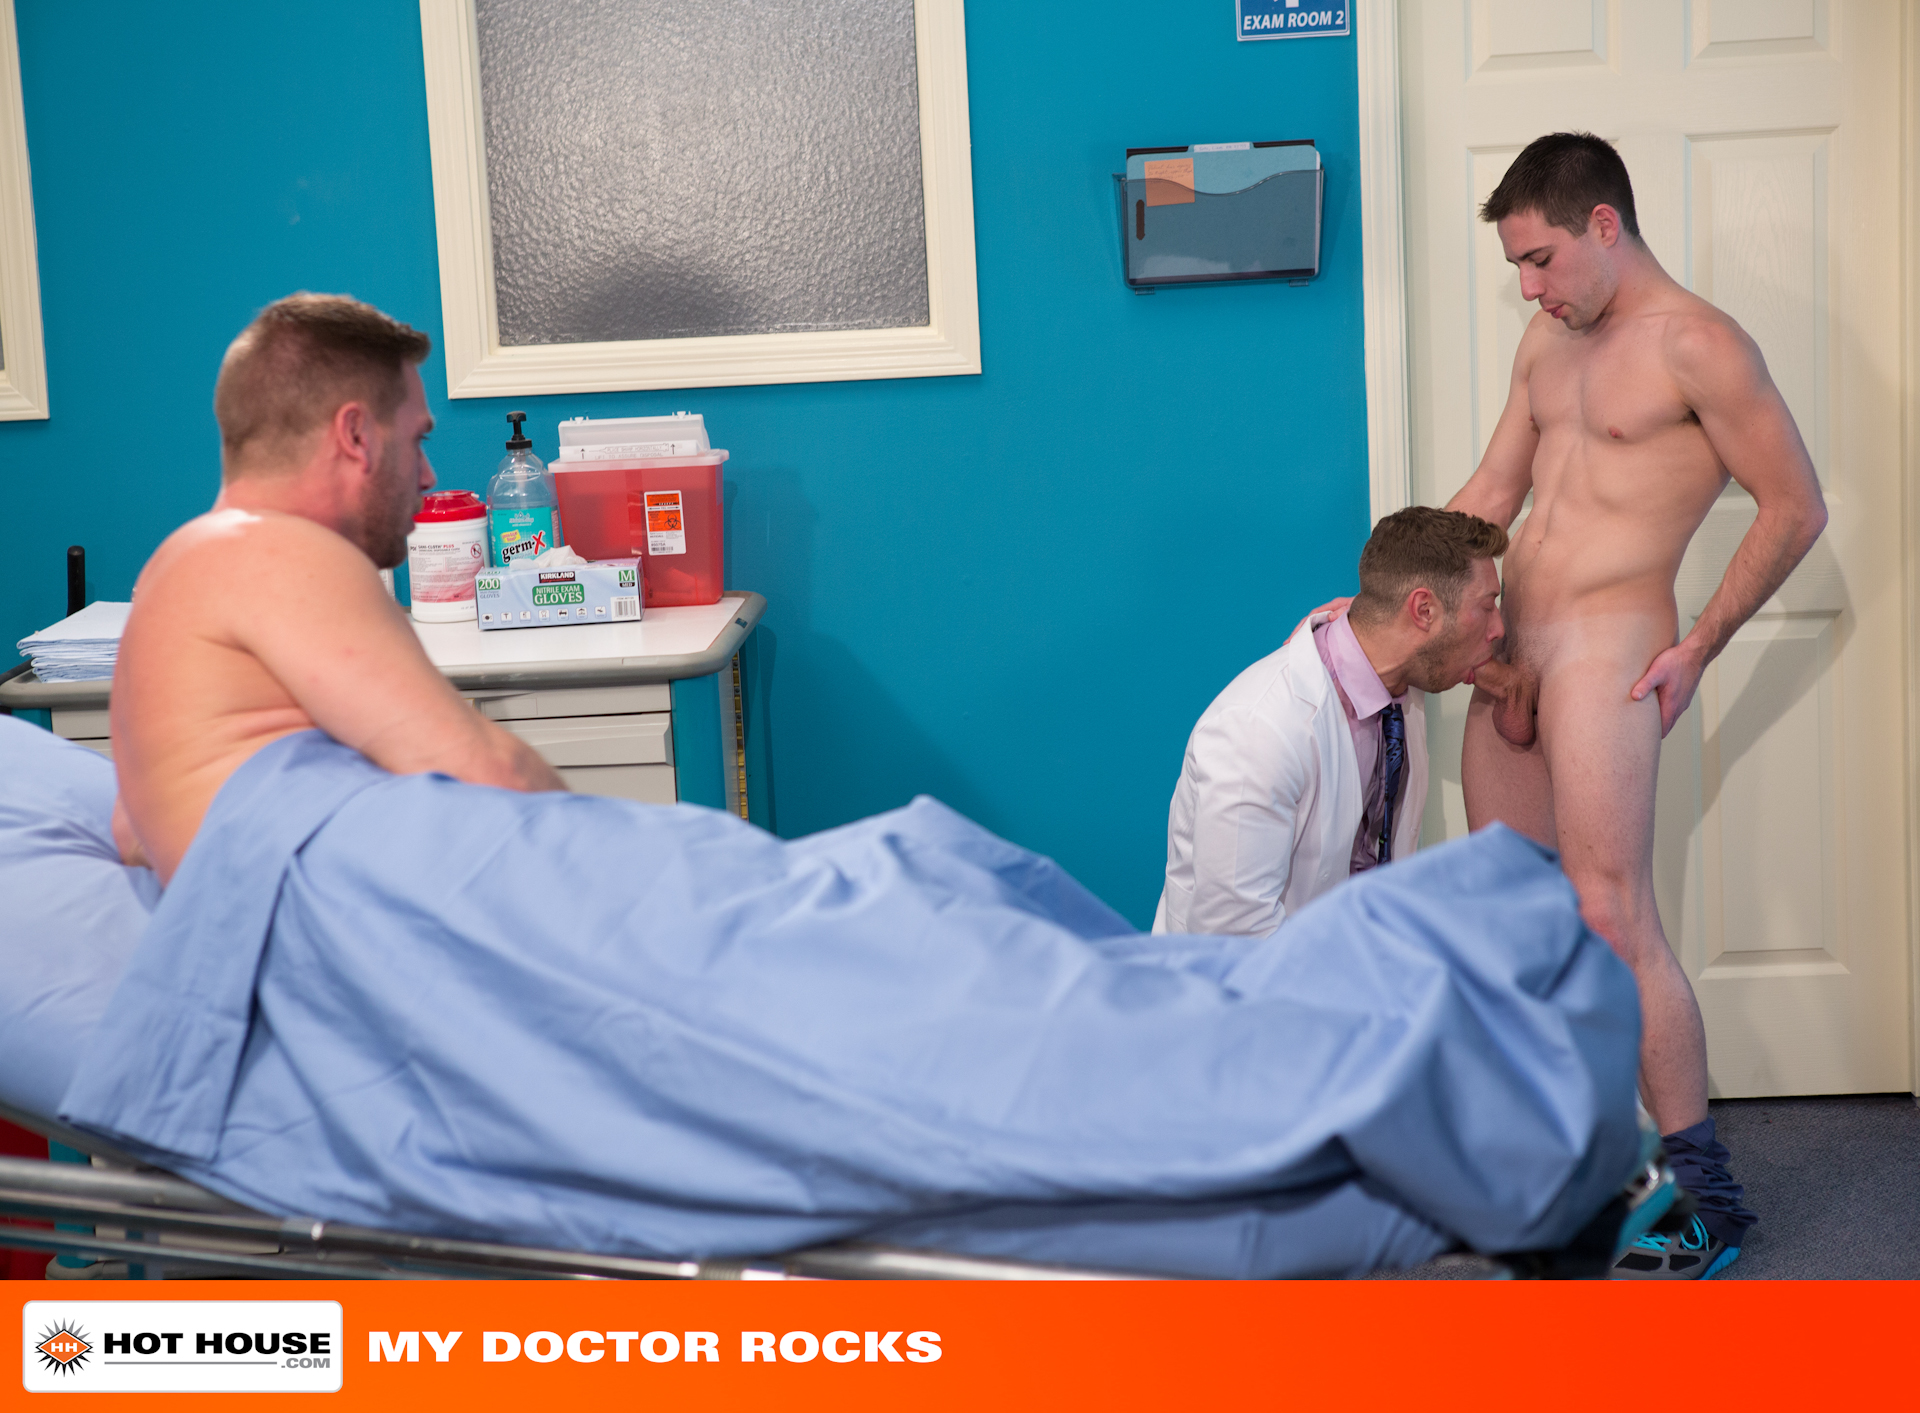 Hot House – My Doctor Rocks (Scene 3)